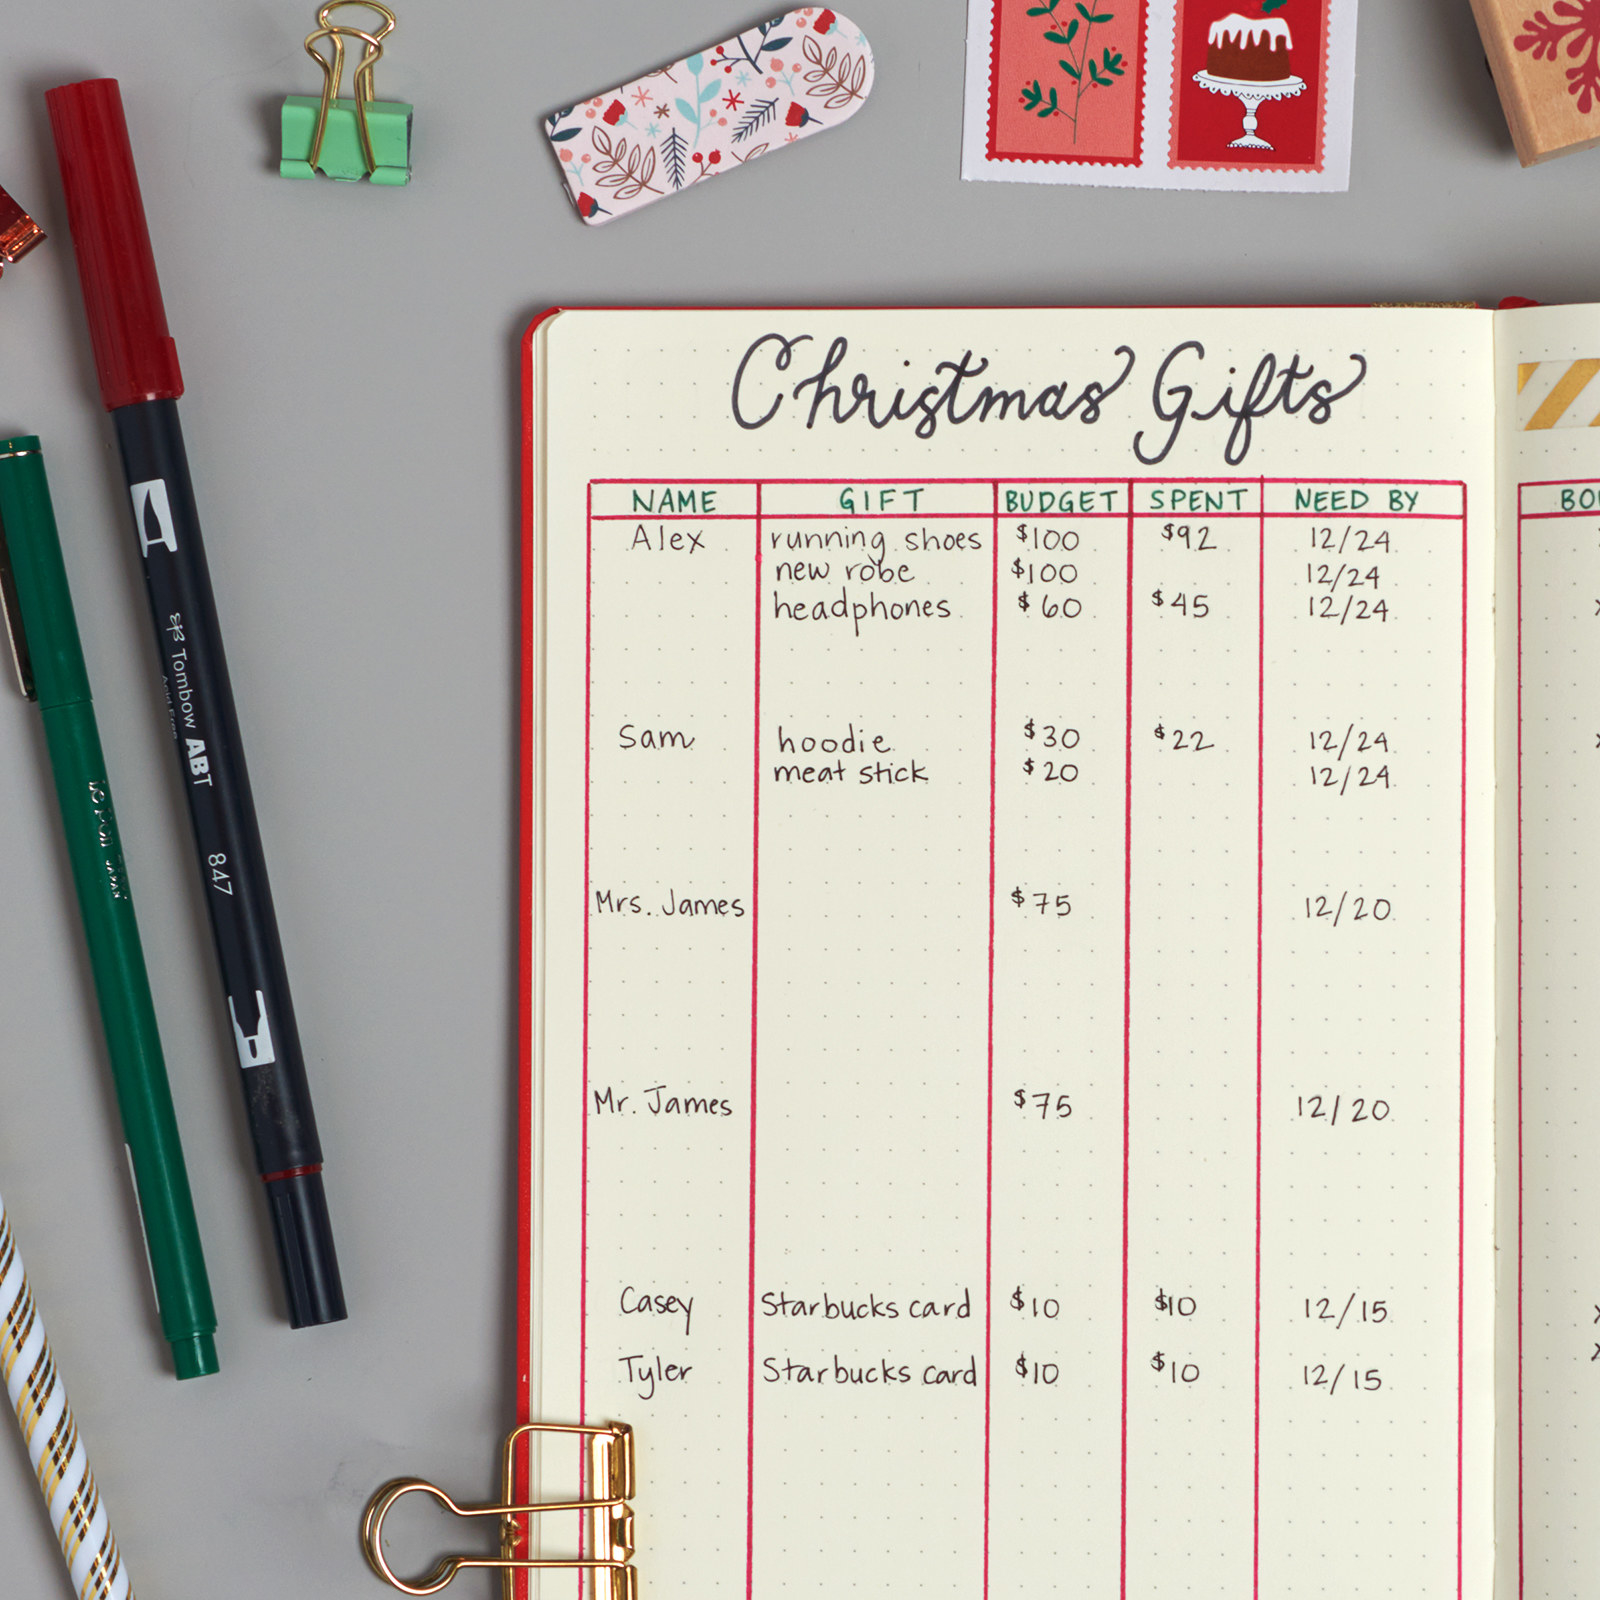 1. Create a spread that helps you keep track of gift ideas and purchases. (Click any image to enlarge.)